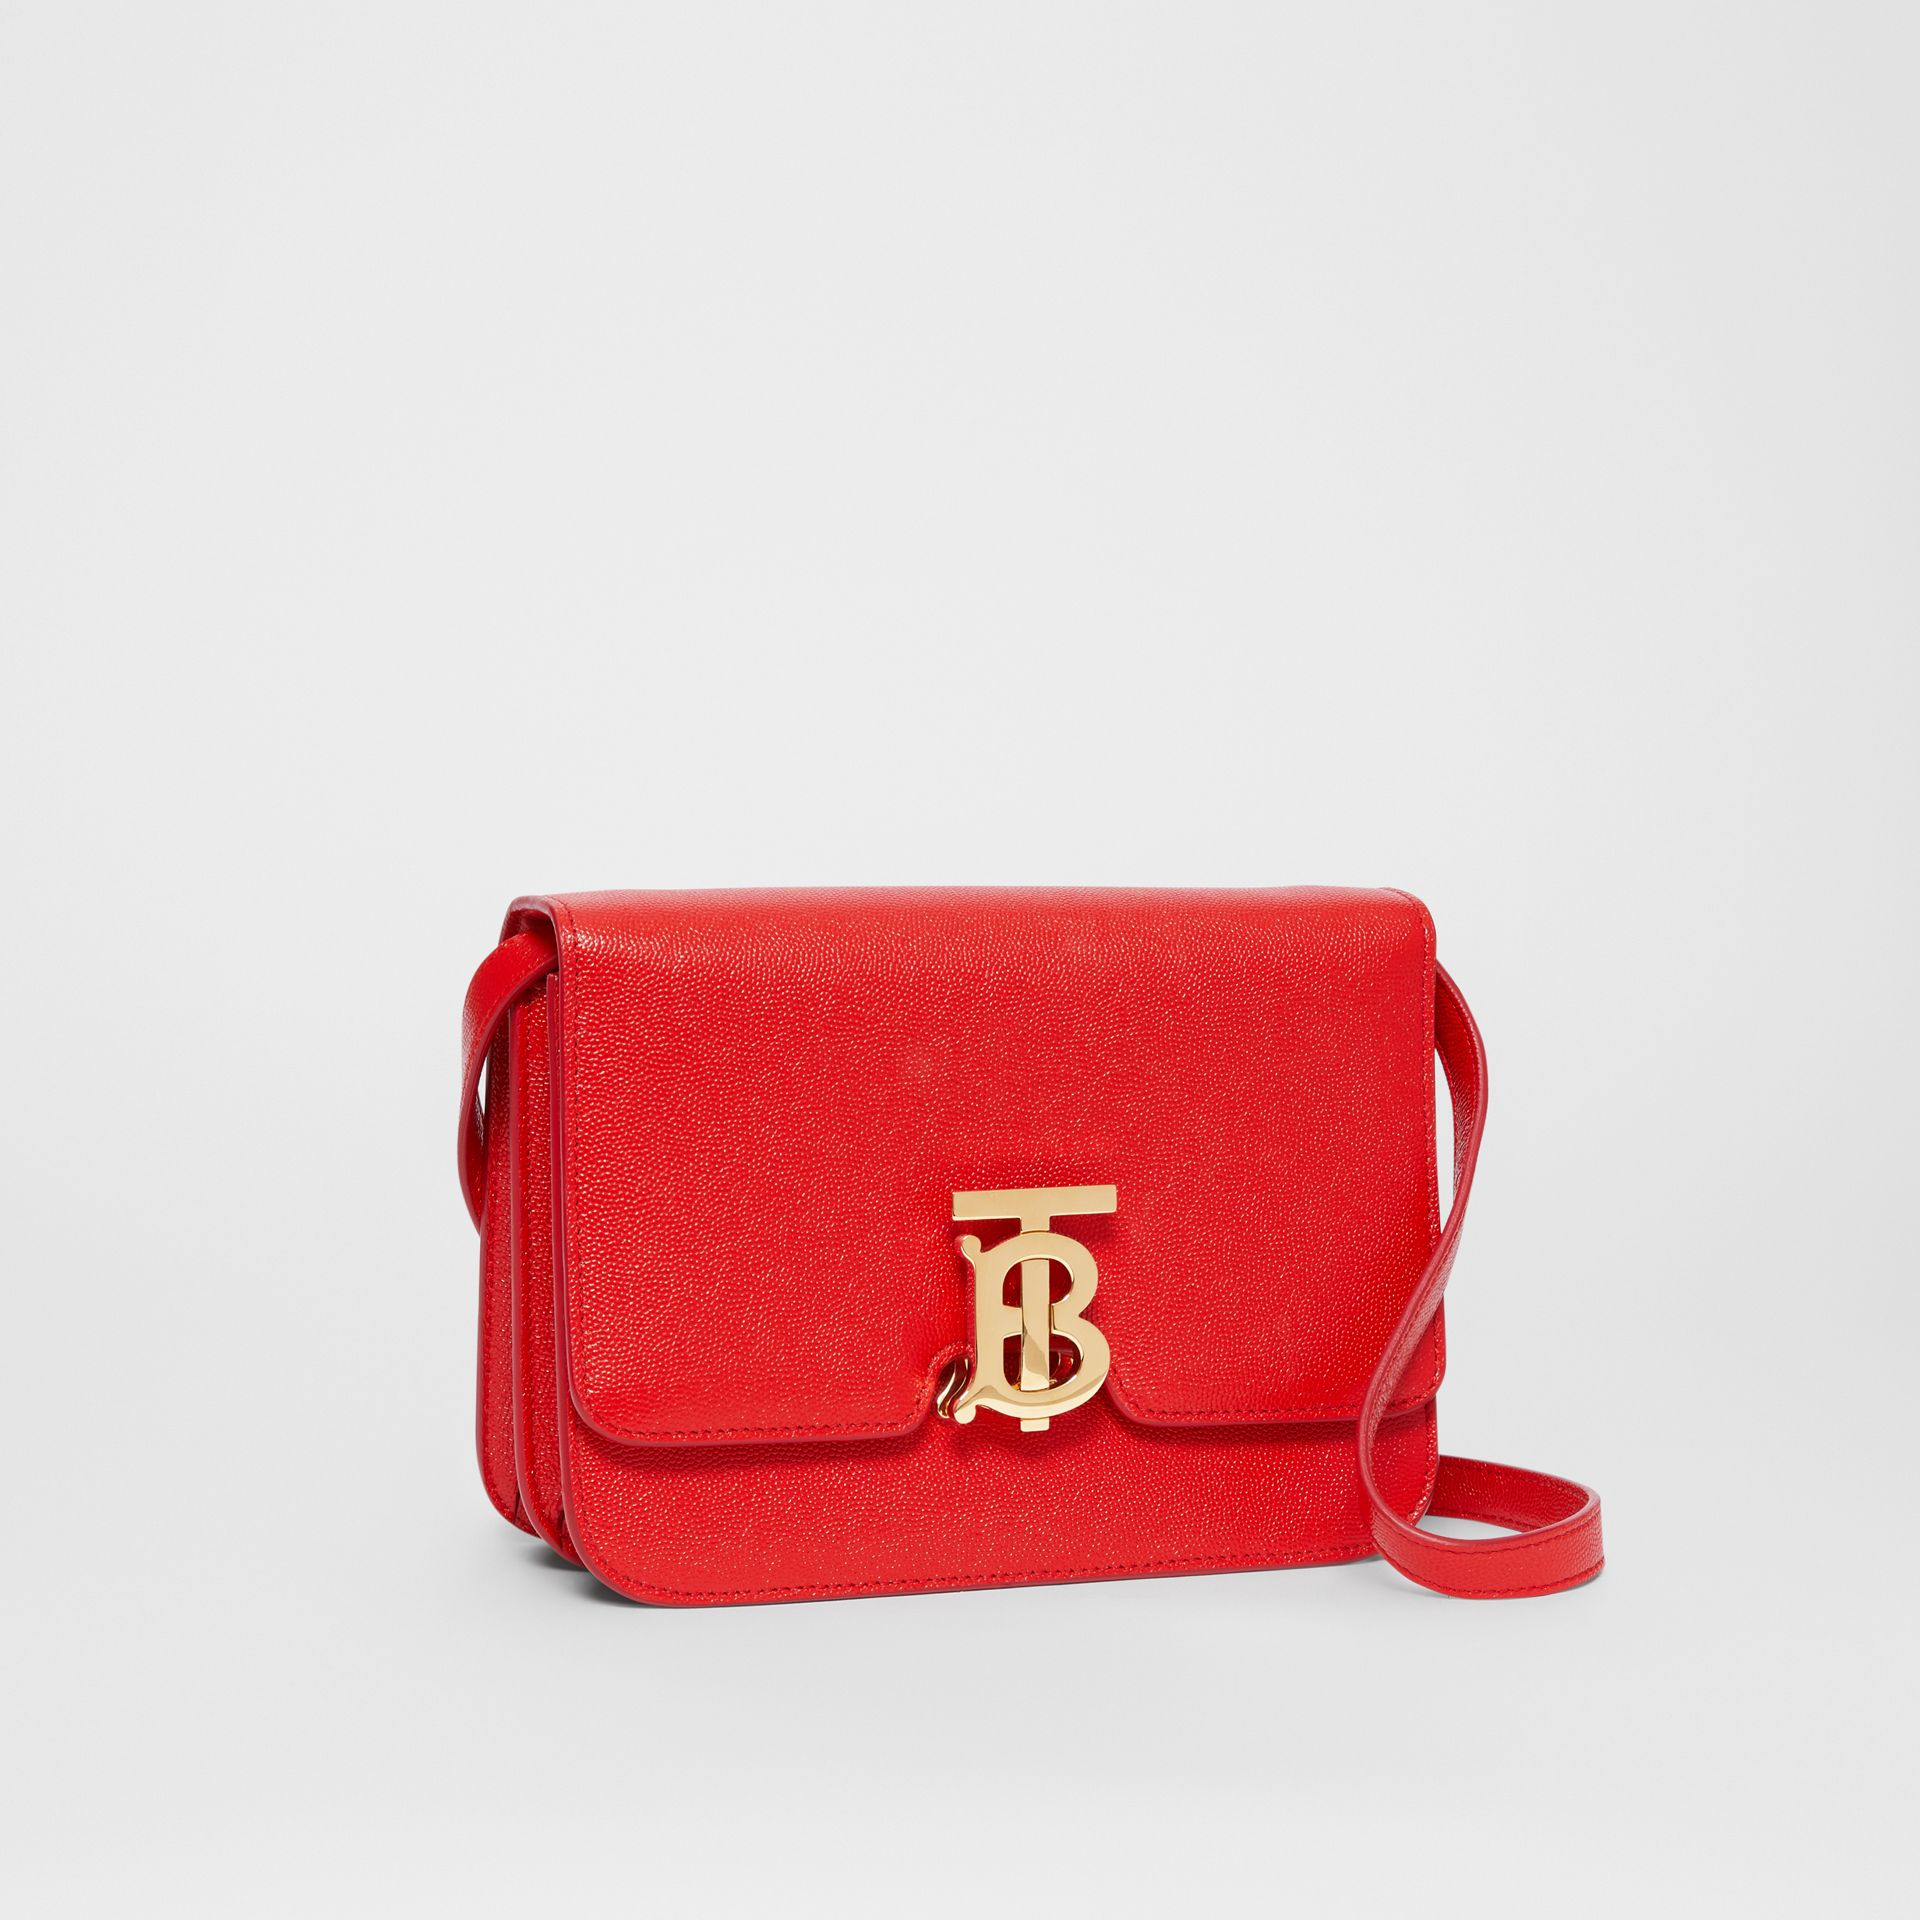 Small Grainy Leather TB Bag in Bright Red - Women | Burberry - gallery image 6